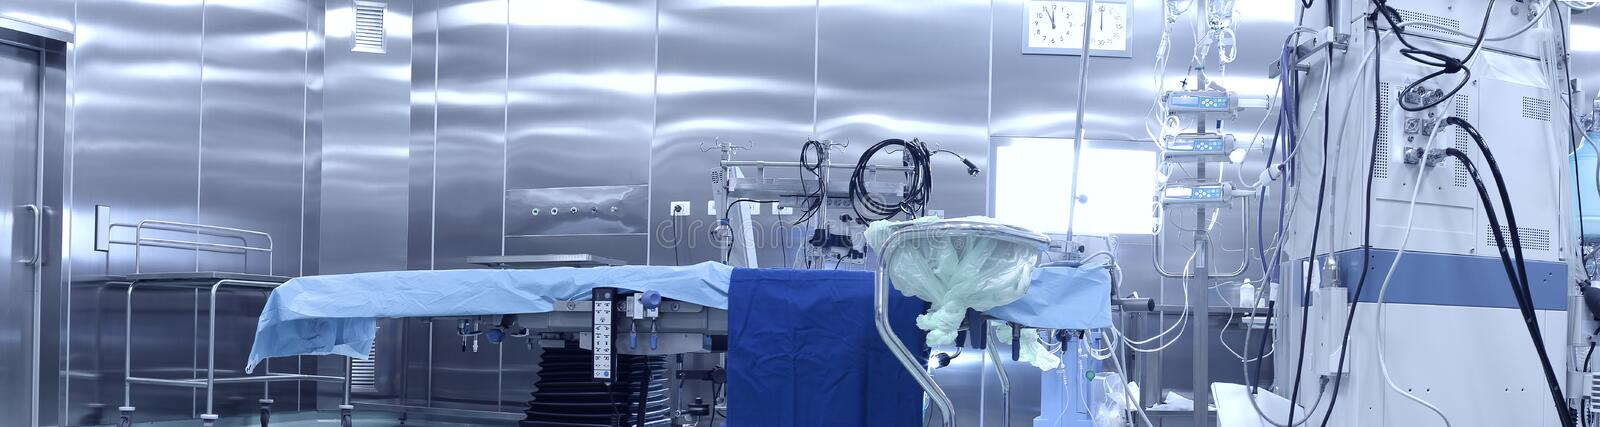 Operating room stock images